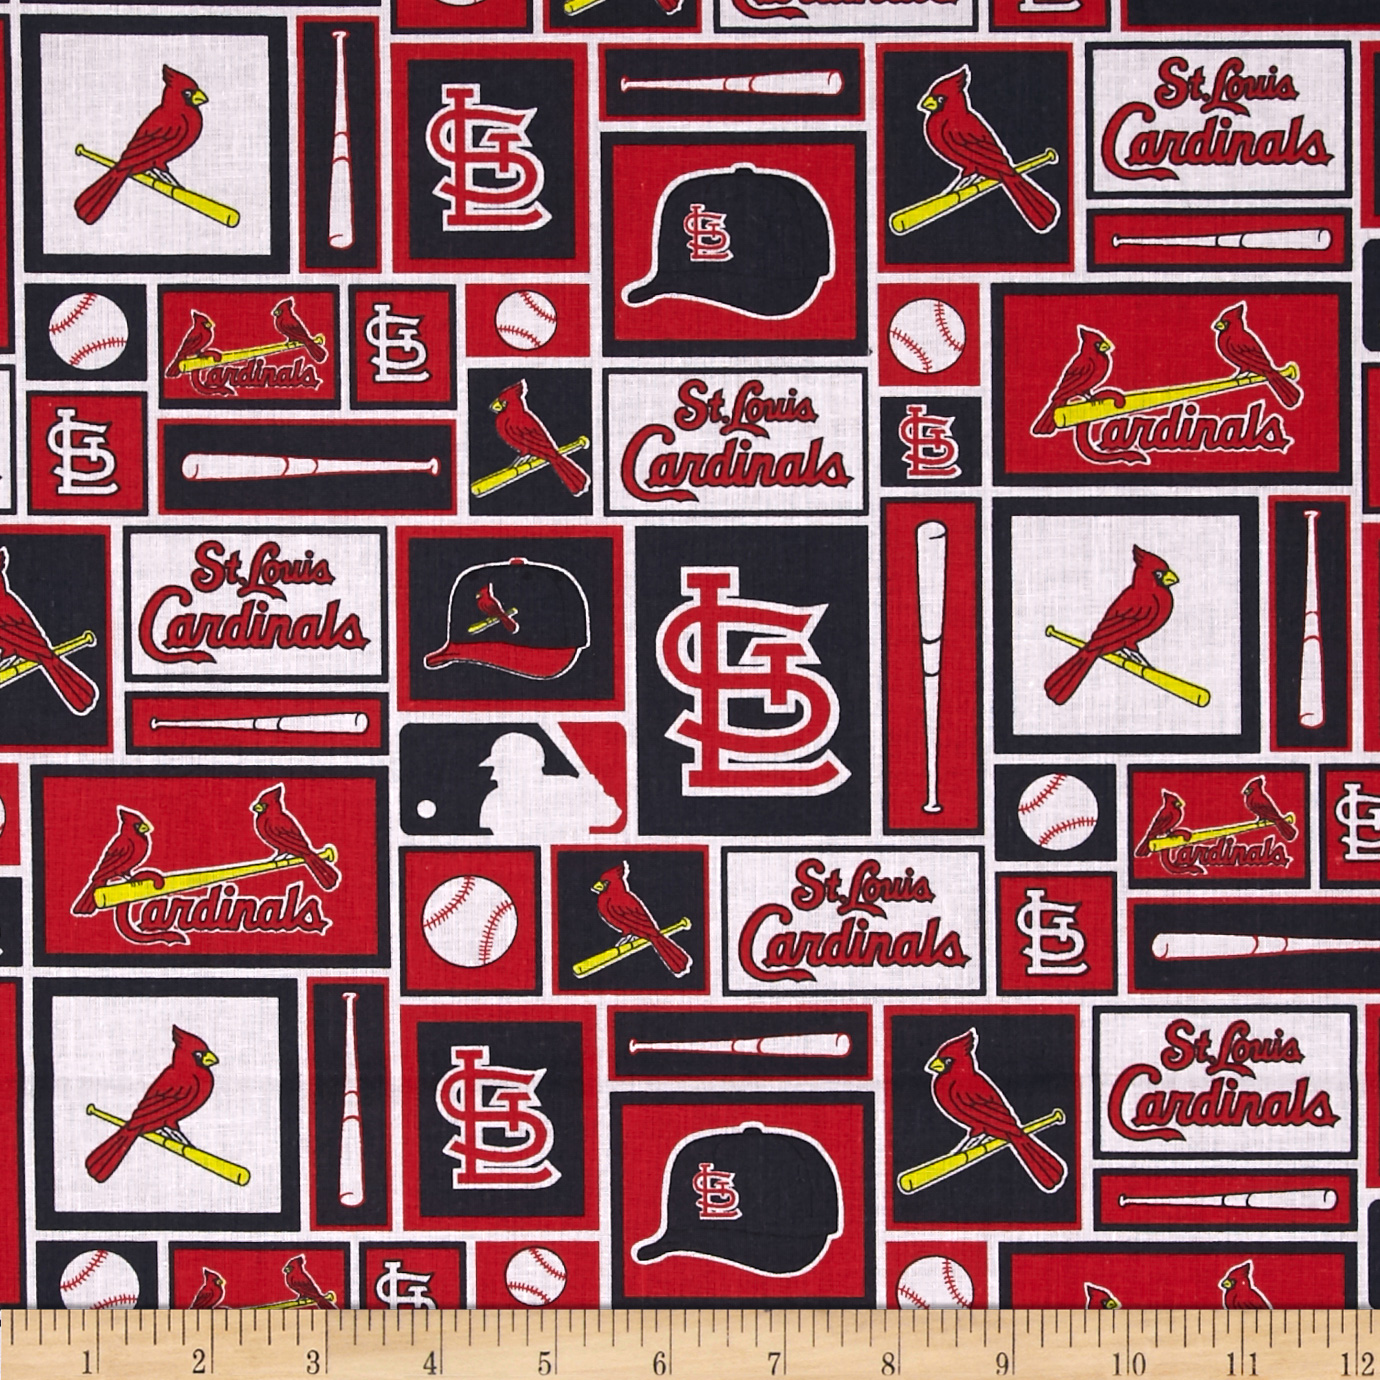 MLB Cotton Broadcloth St. Louis Cardinals Black/Red Fabric by Fabric Traditions in USA